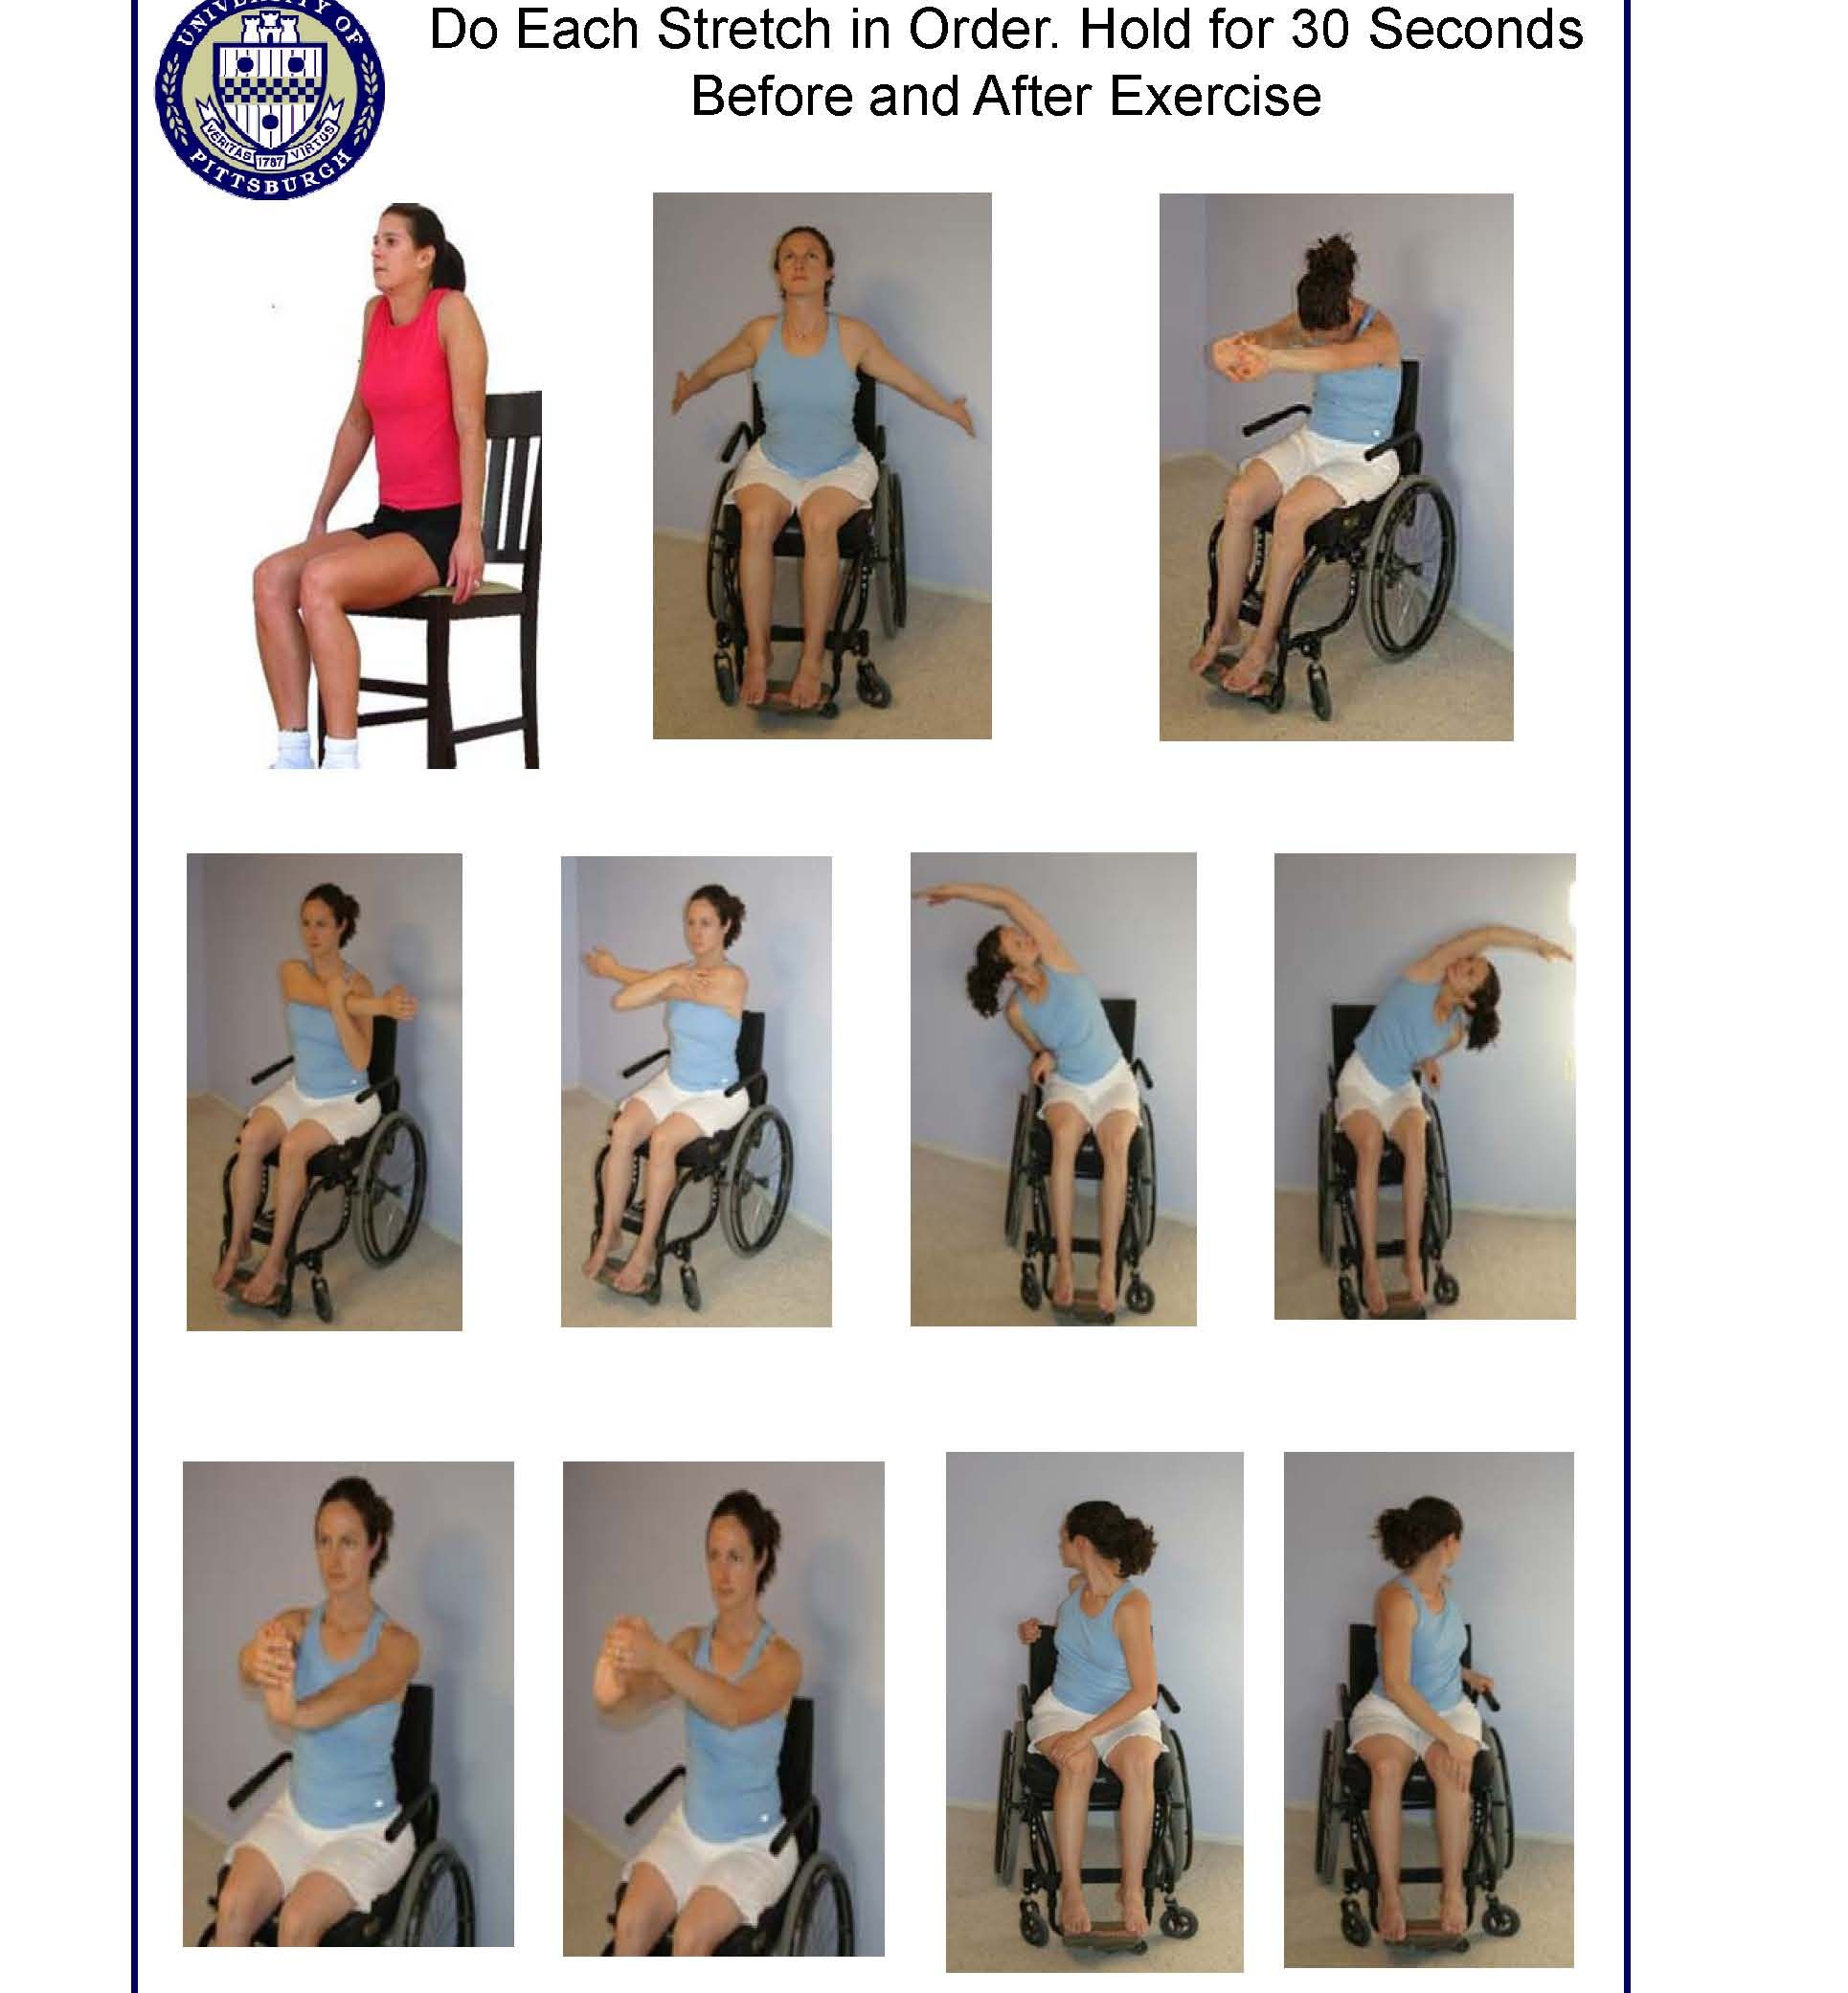 Before doing these stretches you will want to get your heart rate up a bit which will warm up your body. To do that you could do any of these movements for a few minutes: pushing your wheelchair lightly around, doing some gentle arm circles, or moving your arms back and forth like you are marching.